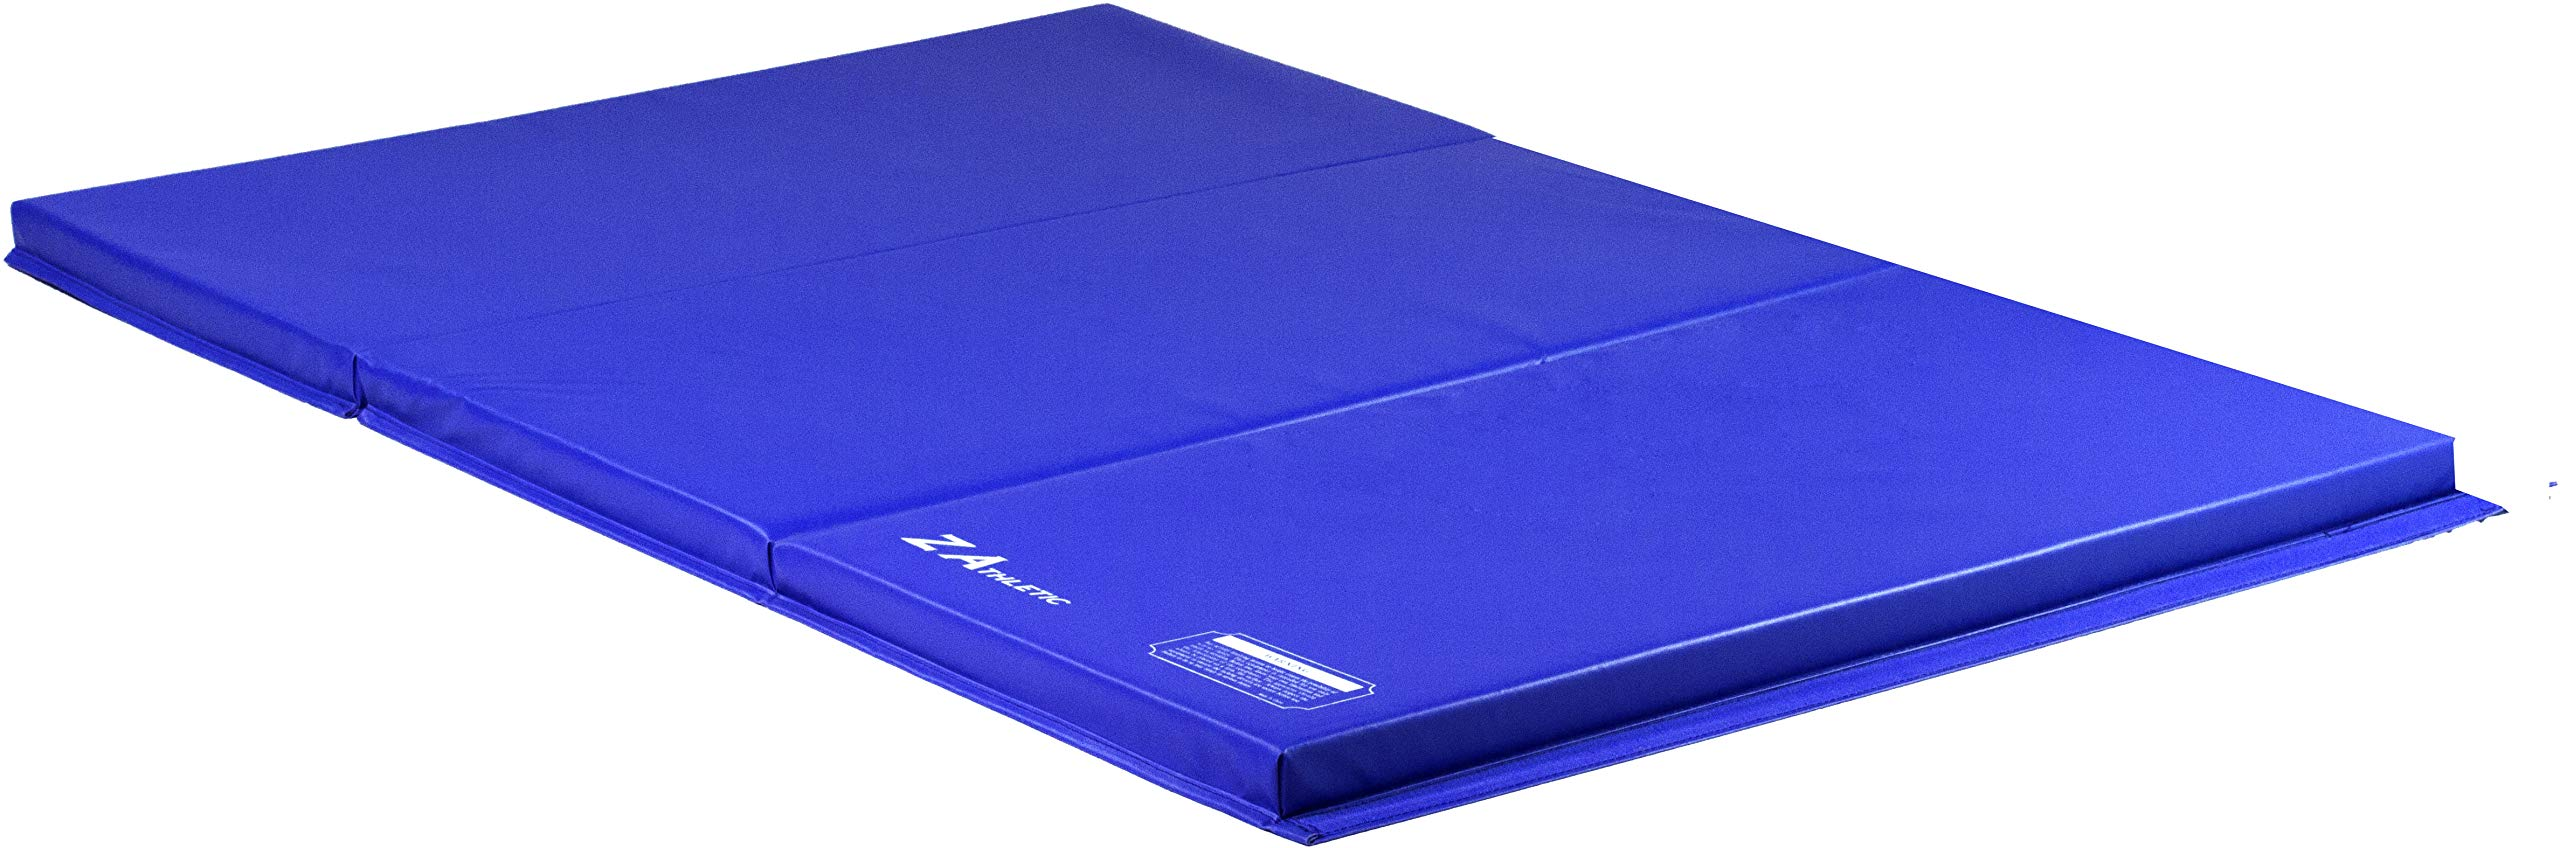 Z-Athletic Folding Panel Mats for Gymnastics, Martial Arts, Tumbling (4ft x 6ft x 2in, Blue)